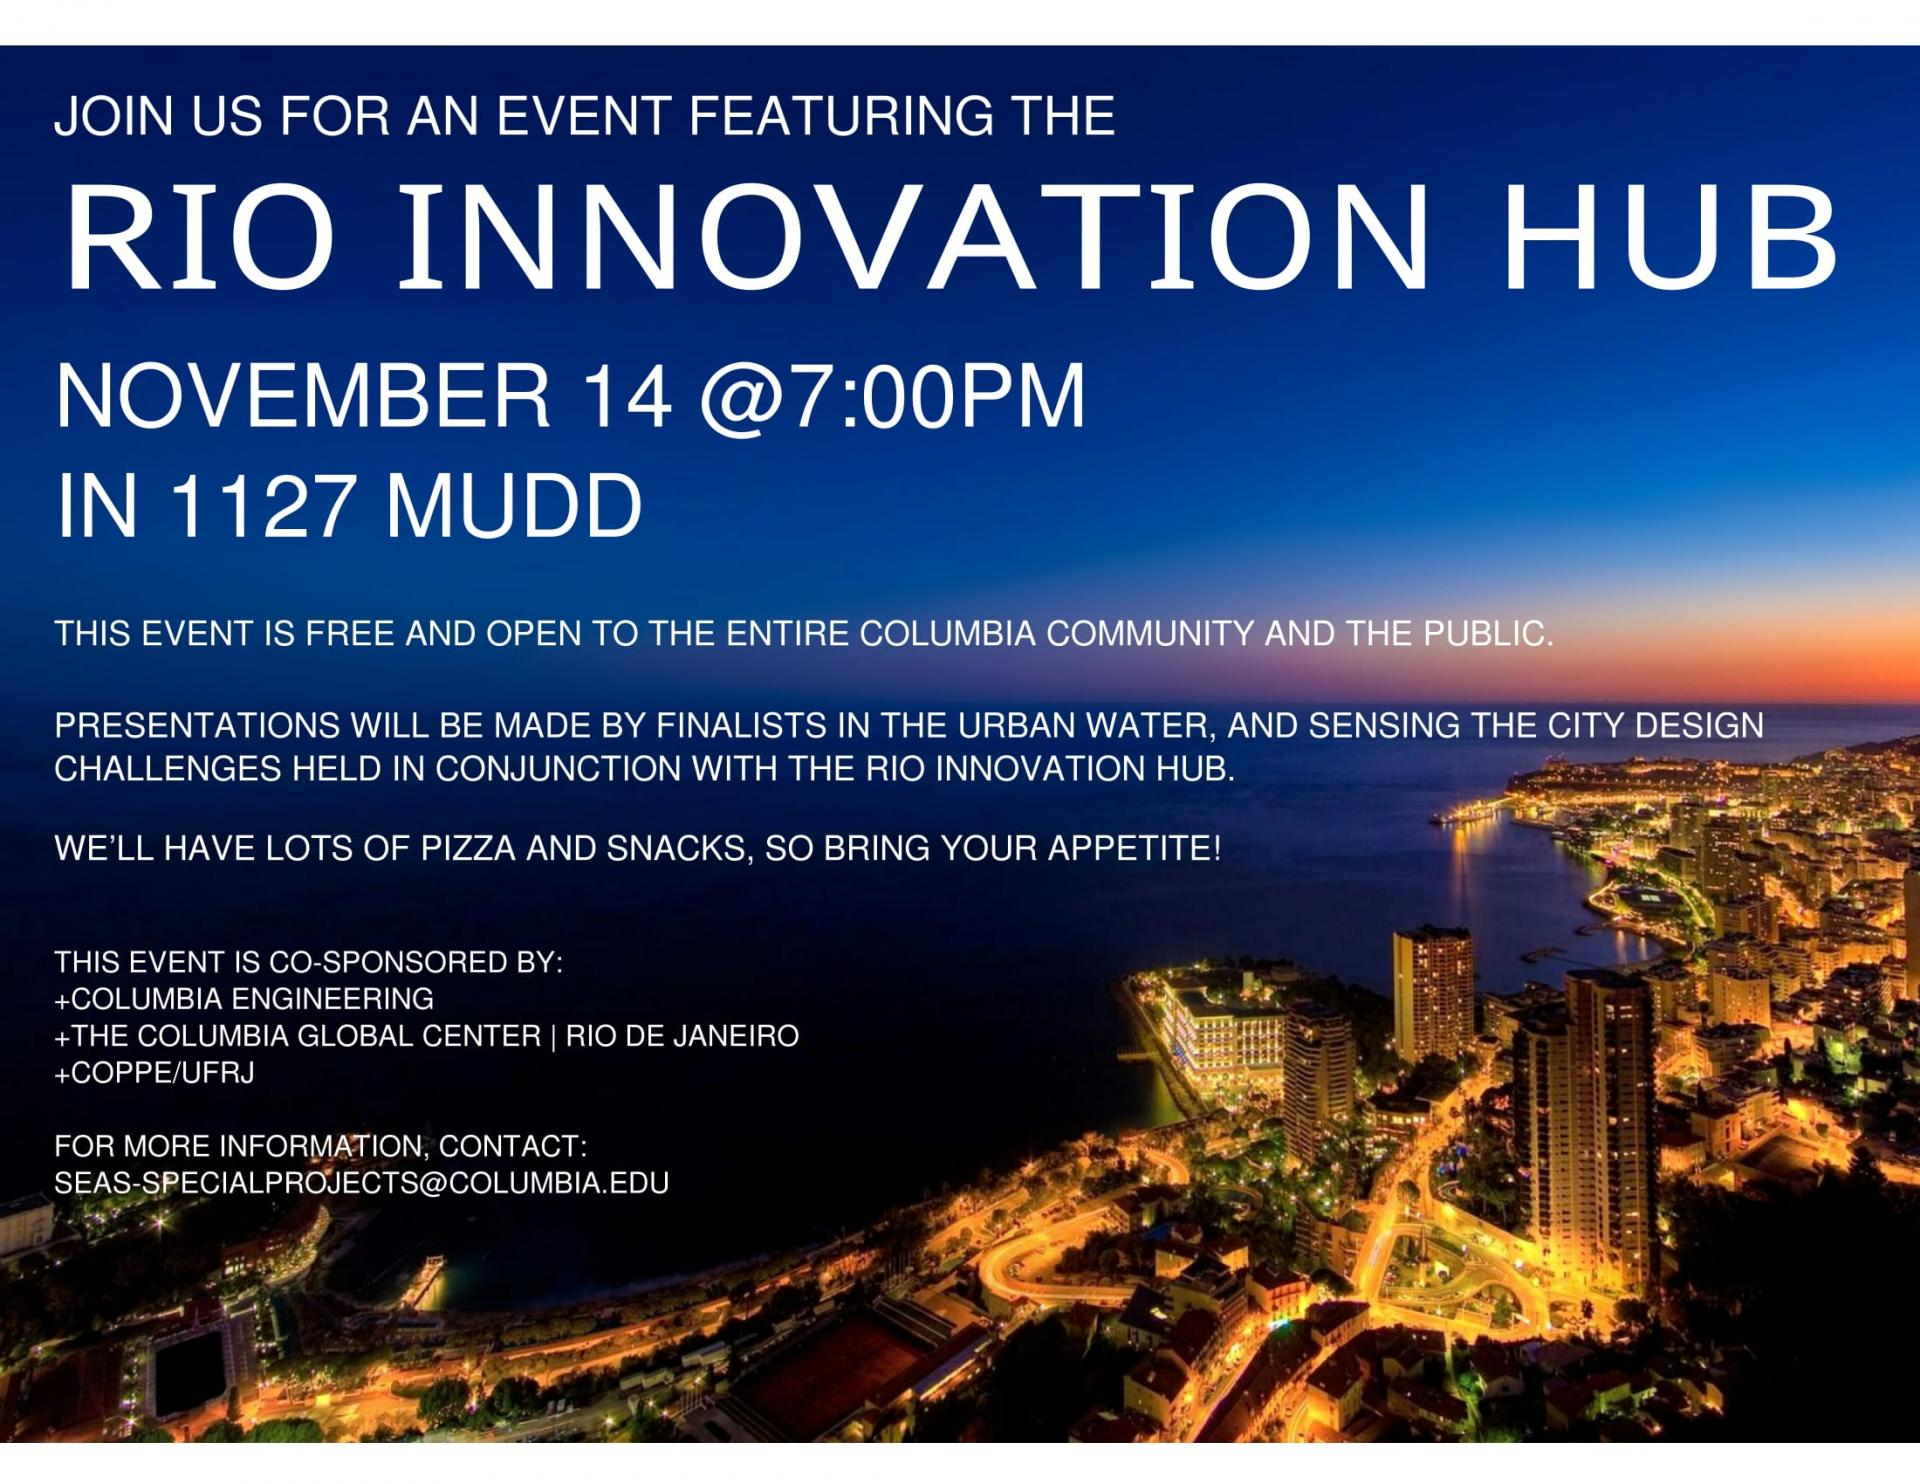 Invitation for the Rio Innovation Hub event in New York